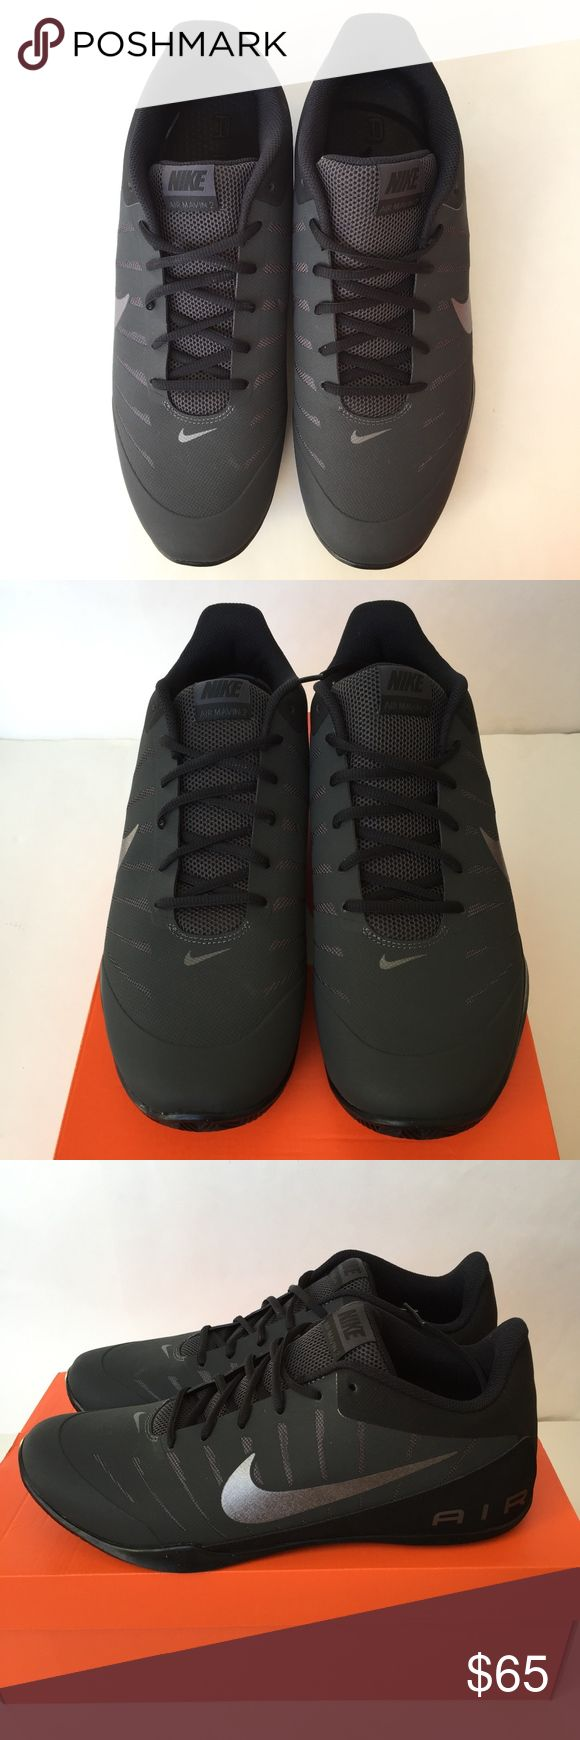 Nike Air Mavin Low 2 Mens Shoes Nubuck 30368-003 Nike Air  Mavin Low 2 Mens Shoes Nubuck 830368-003 Anthracite Basketball Size 13 New with Box!!  Shoot hoops in these eye-catching low-profile basketball shoes that feature a great court feel. -Max Air heel unit for excellent ground relief -breathable synthetic and mesh upper -half-length inner booties ensures snug fit -drop-in midsole made of Phylon foam -rubber outsole provides maximum grip -low-top design allows unrestrictive movement…